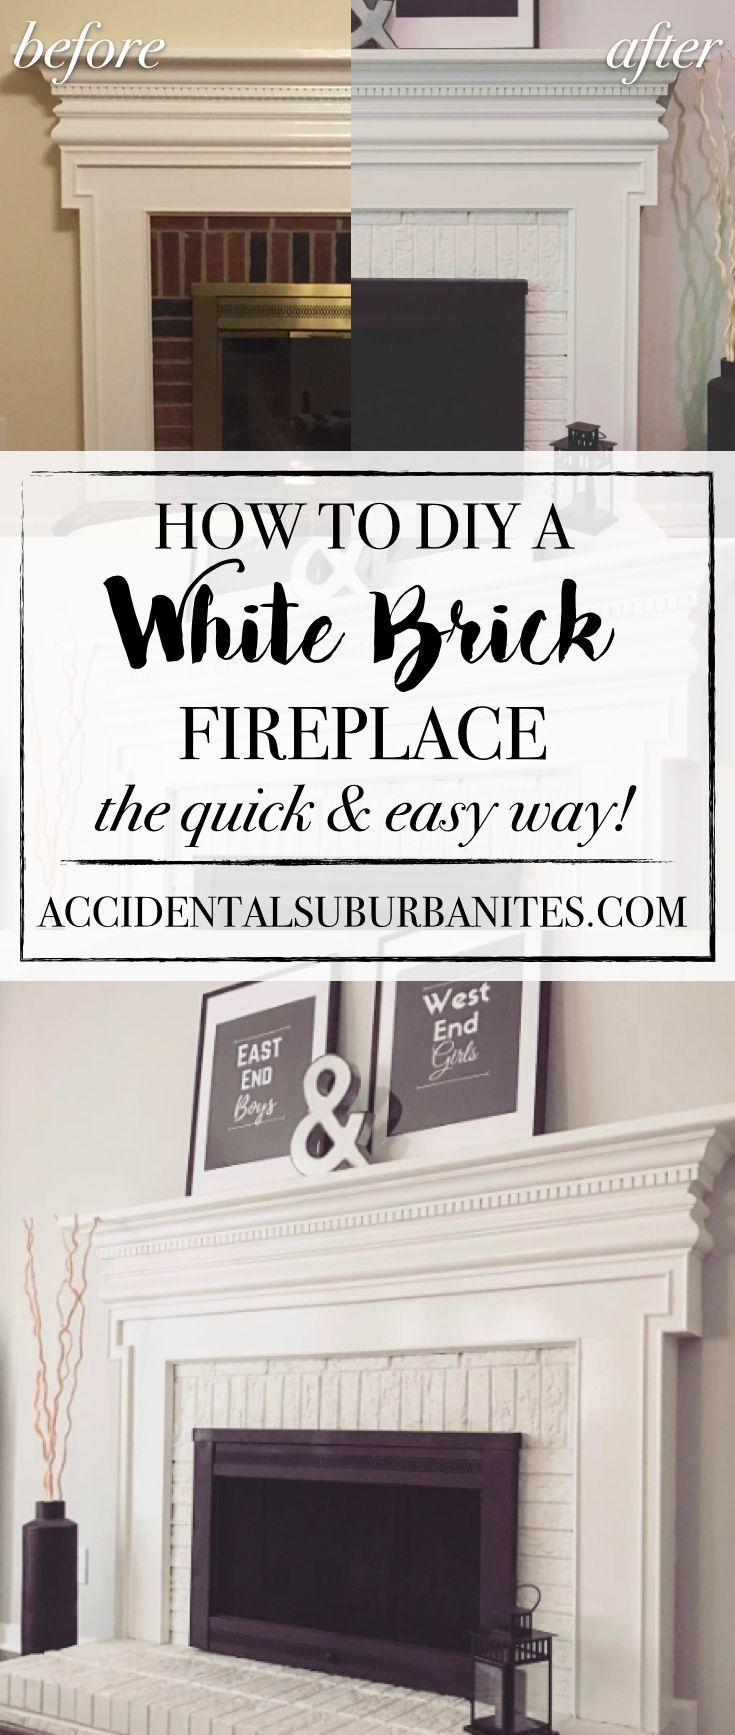 the easiest DIY tutorial for how to transform an ugly brick fireplace into a chic modern farmhouse white brick fireplace by painting the brick white!